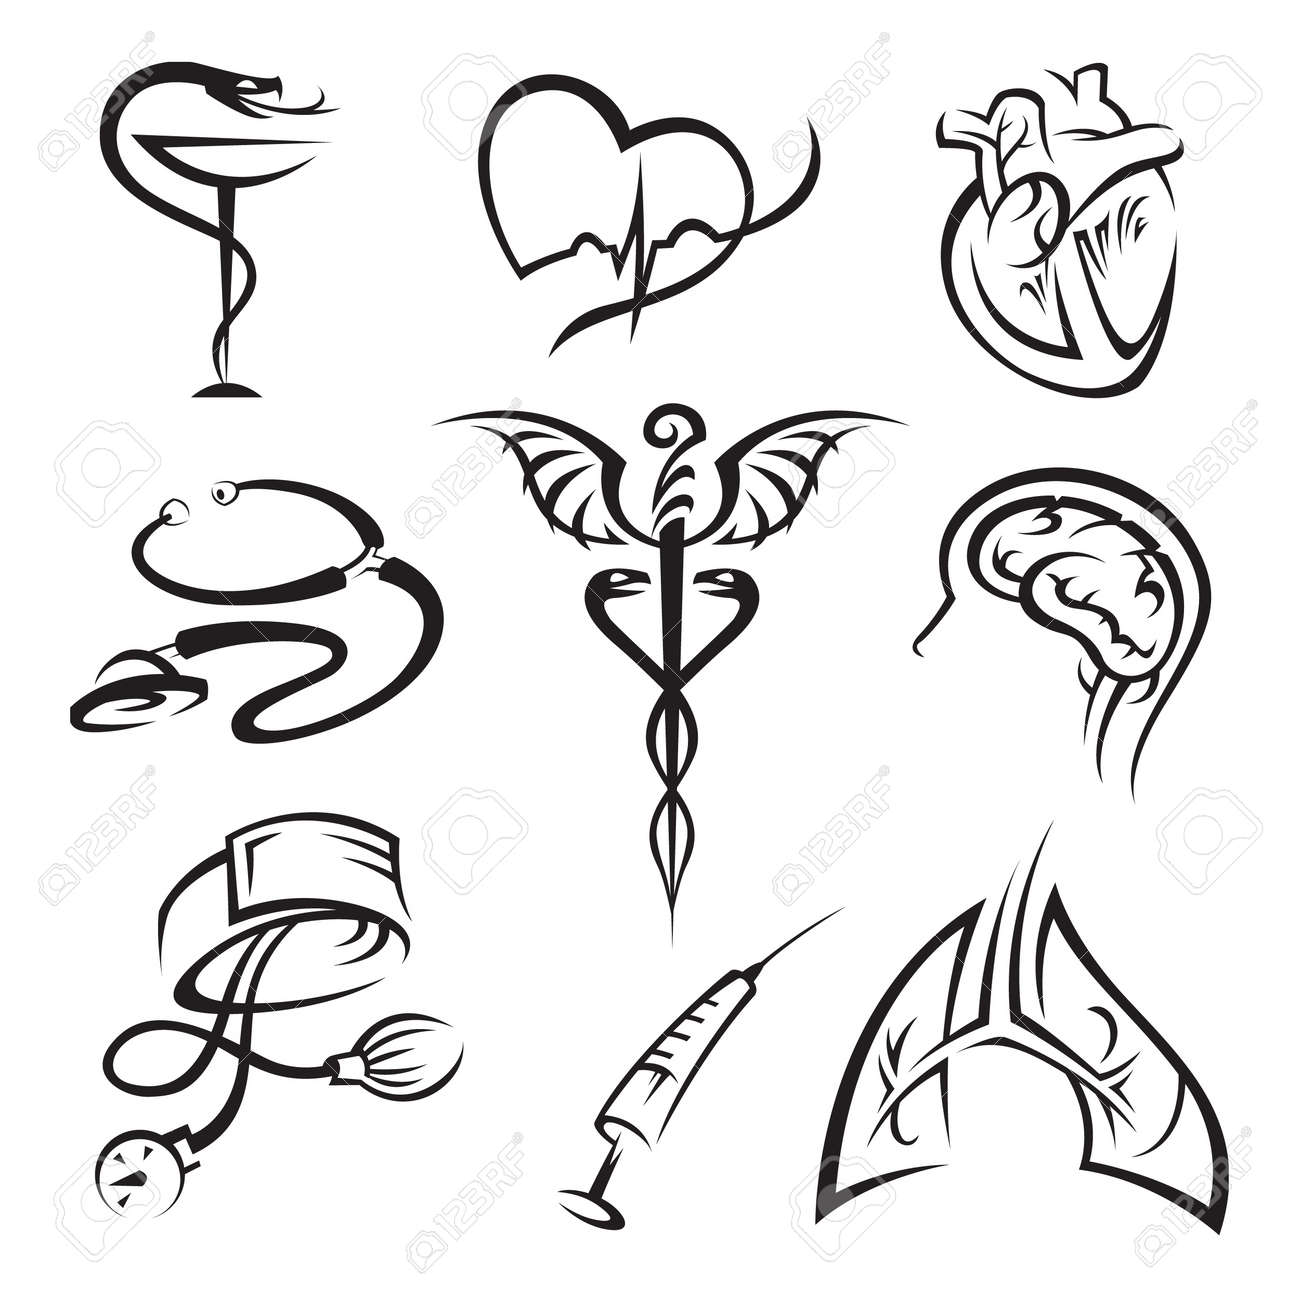 medical icons set Stock Vector - 11650111